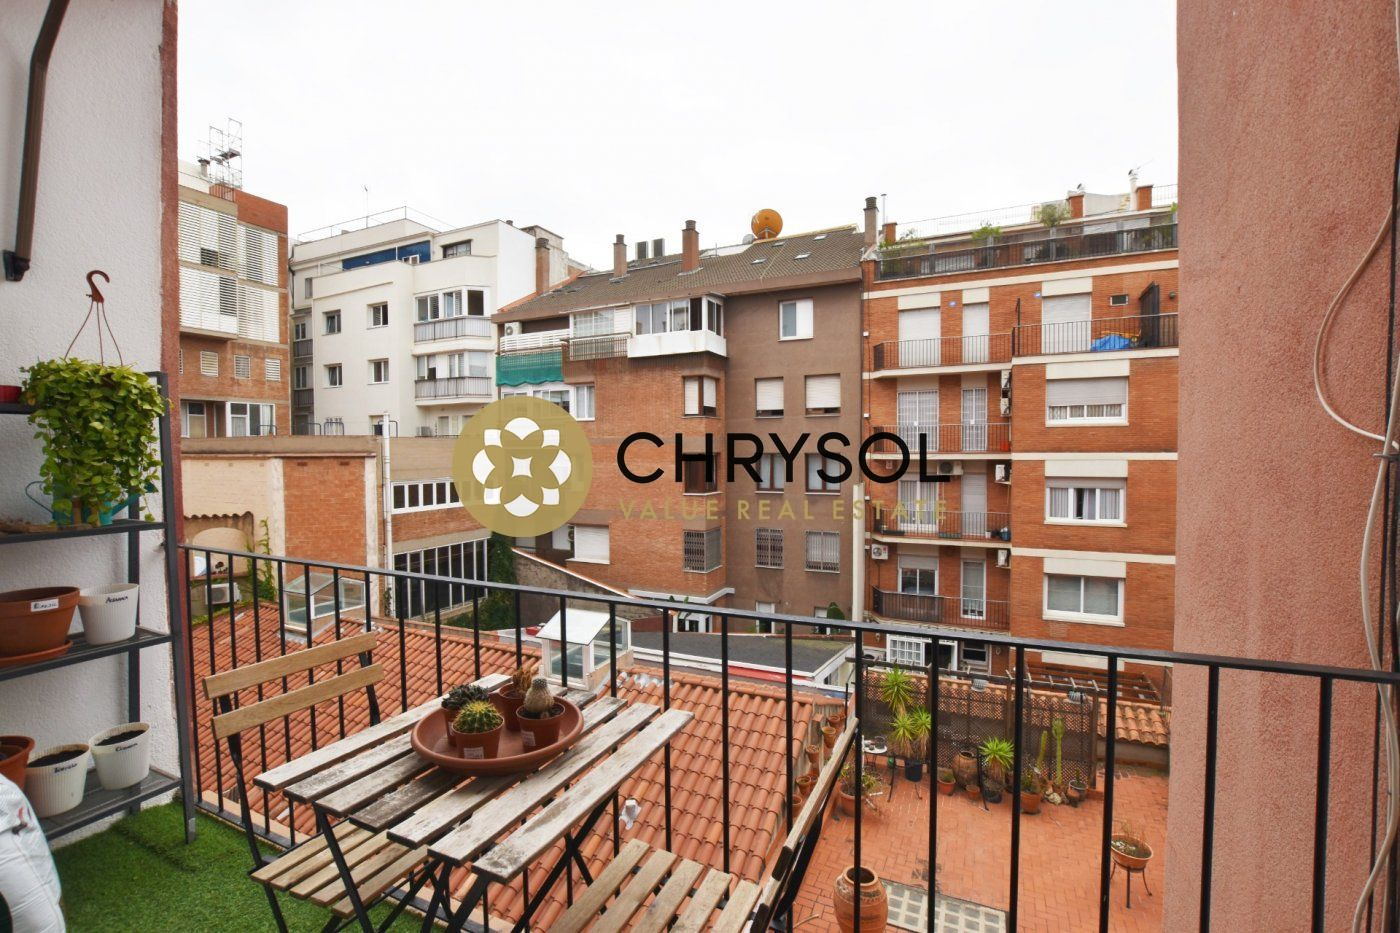 Photogallery - 6 - Chrysol Value